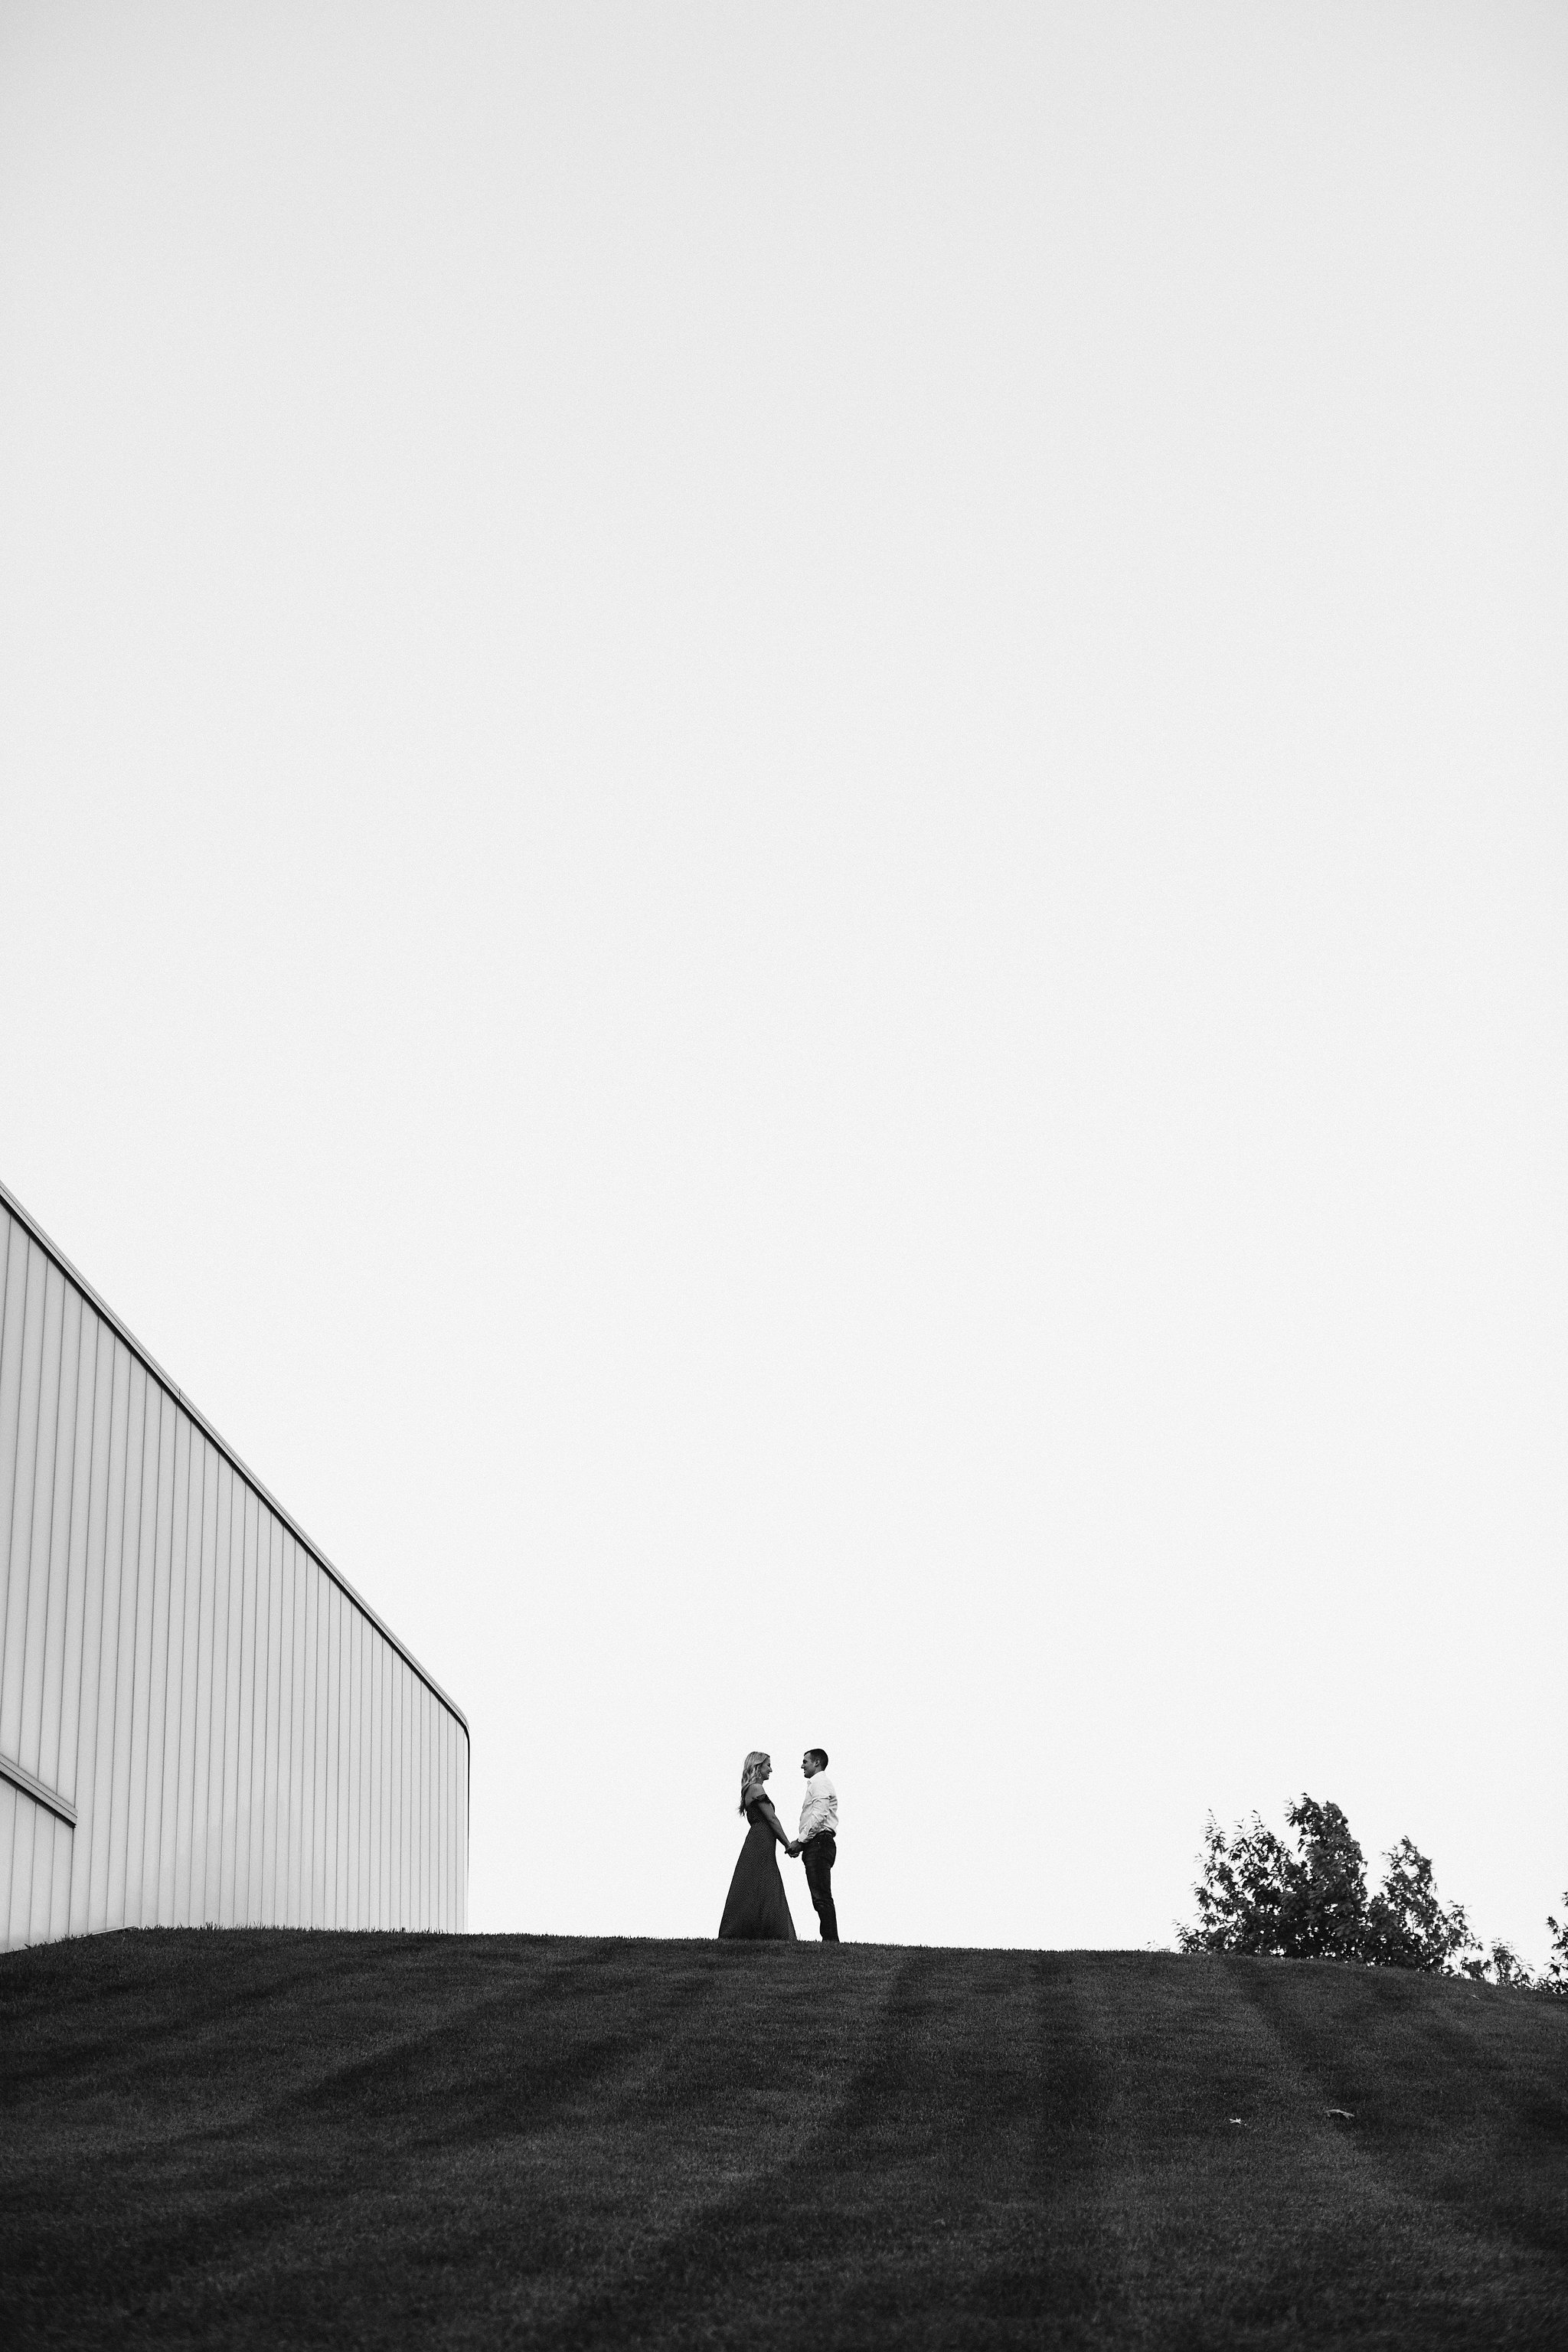 Nelson Museum and Crossroads Engagement Session_Loose Mansion Winter Wedding_Kindling Wedding Photography_119.JPG